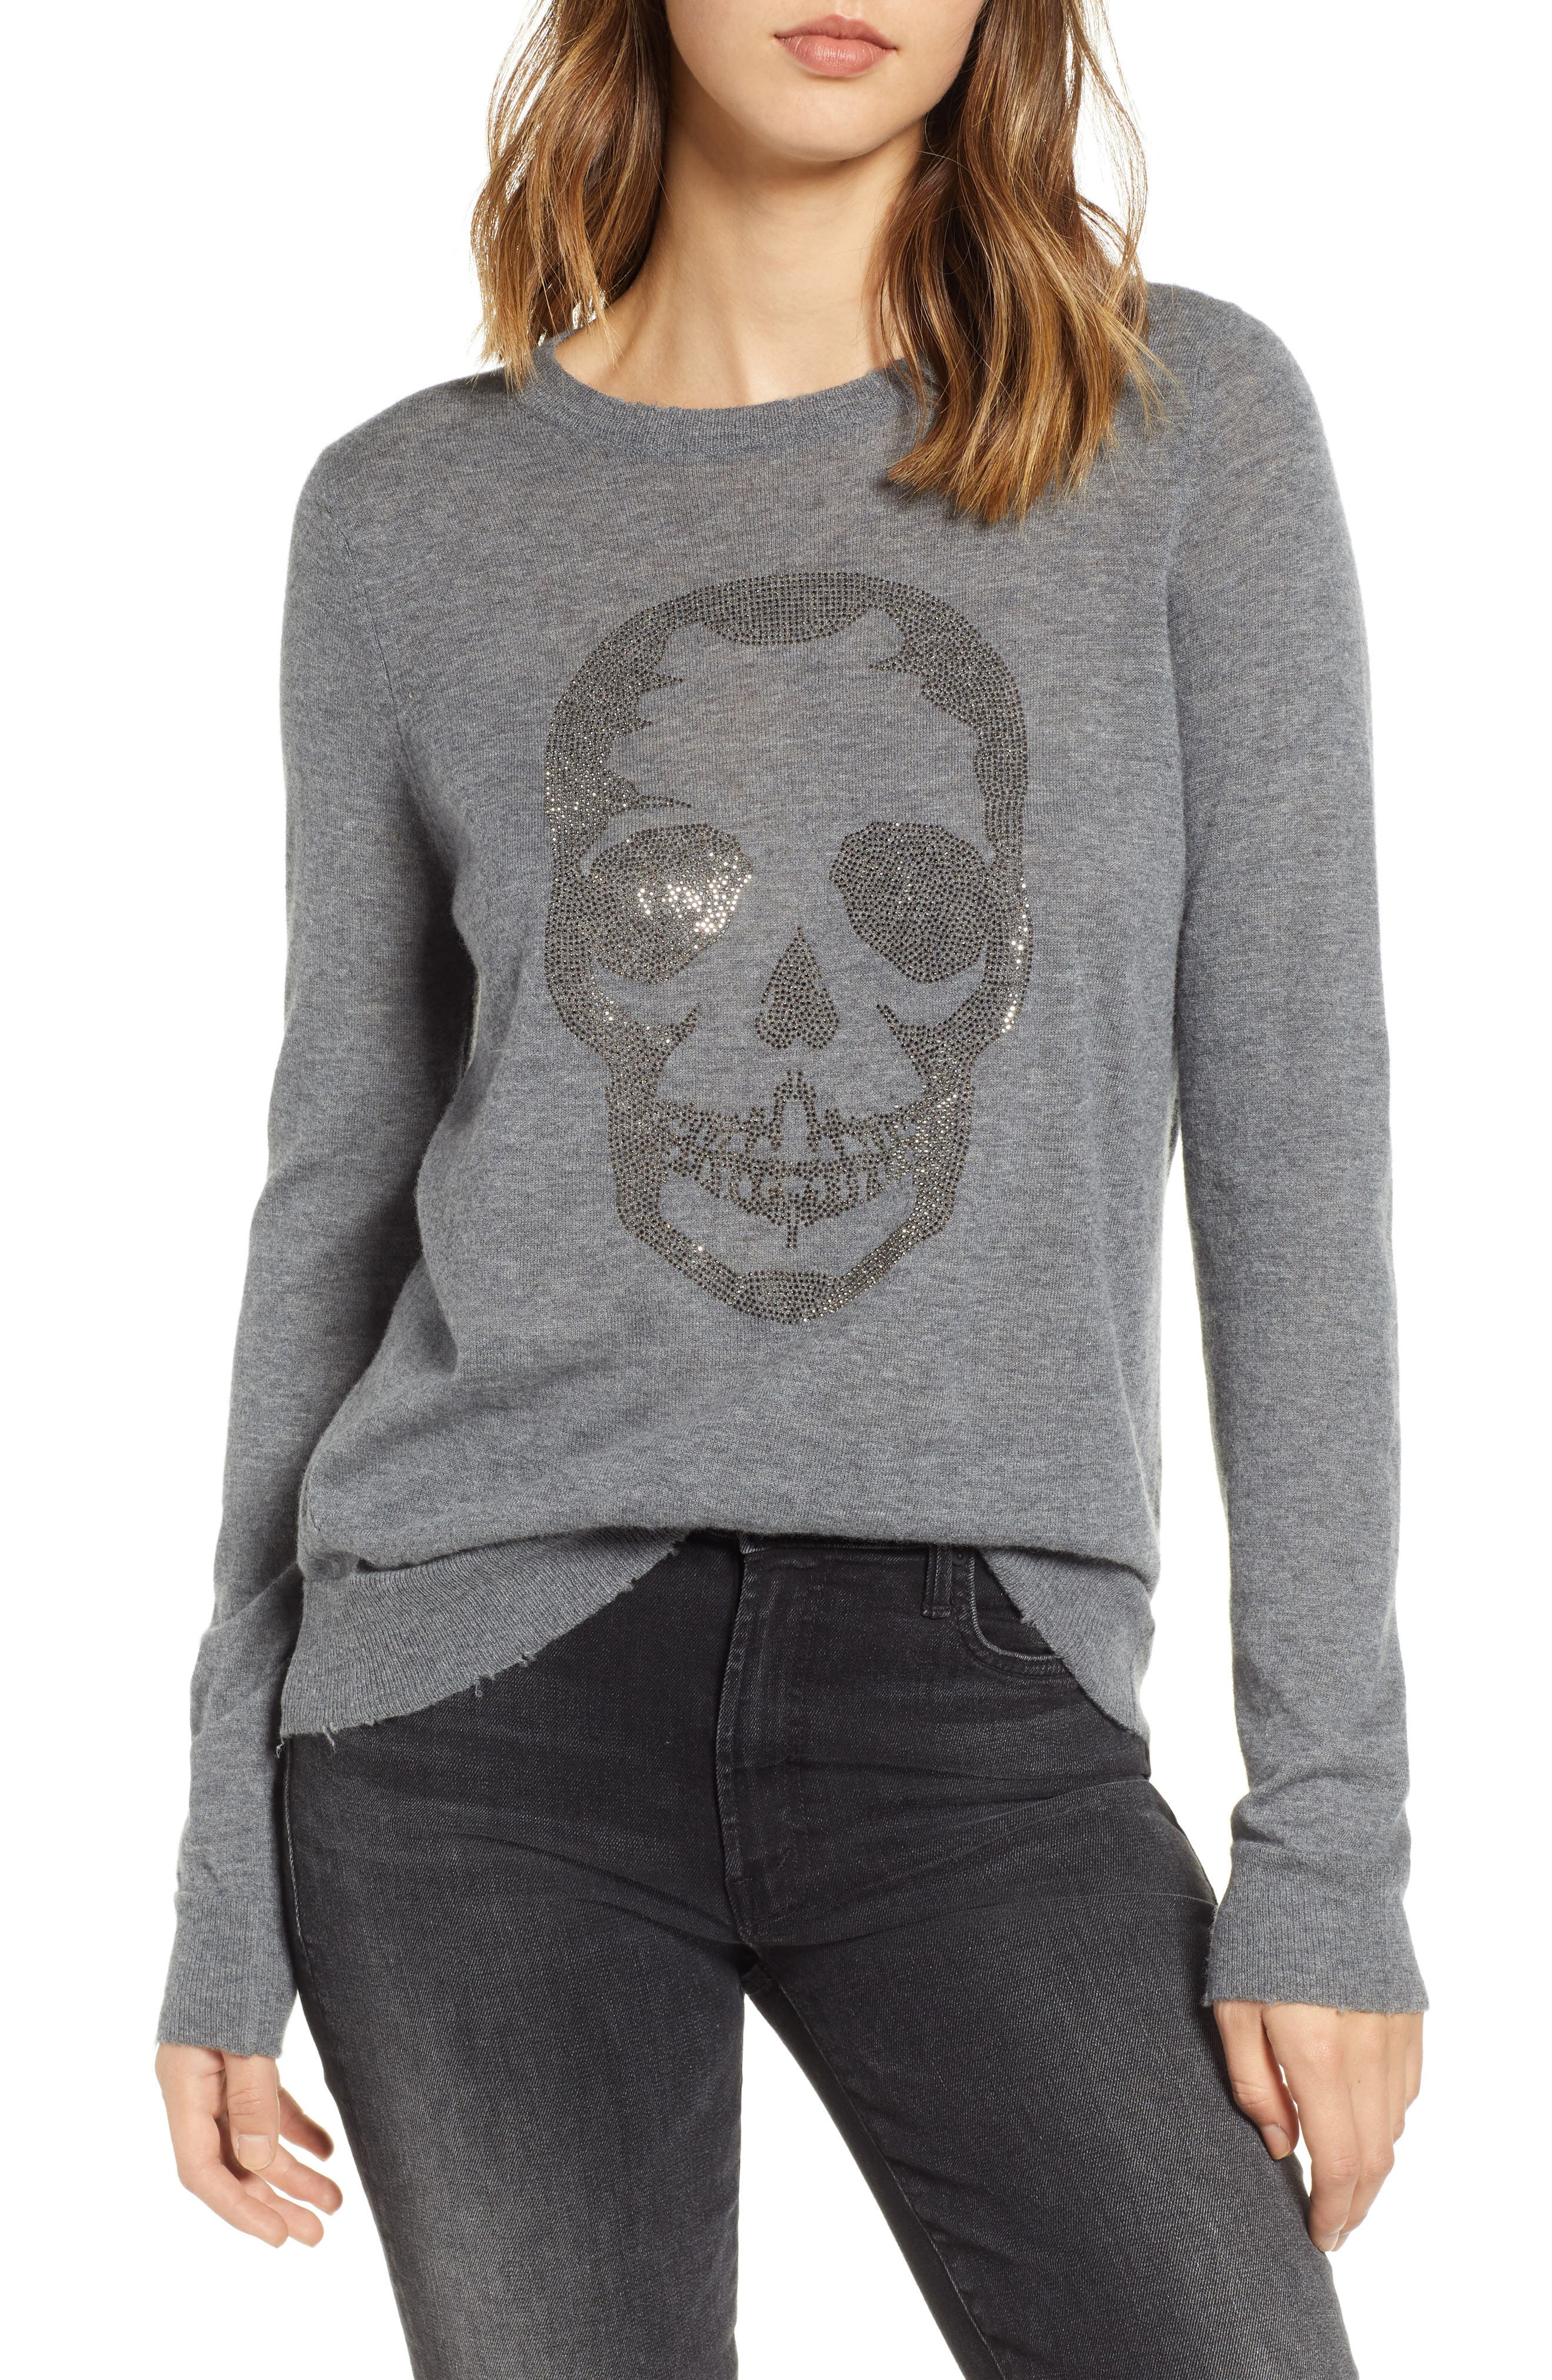 Miss Bis Skull Cashmere Tee,                         Main,                         color, GRIS